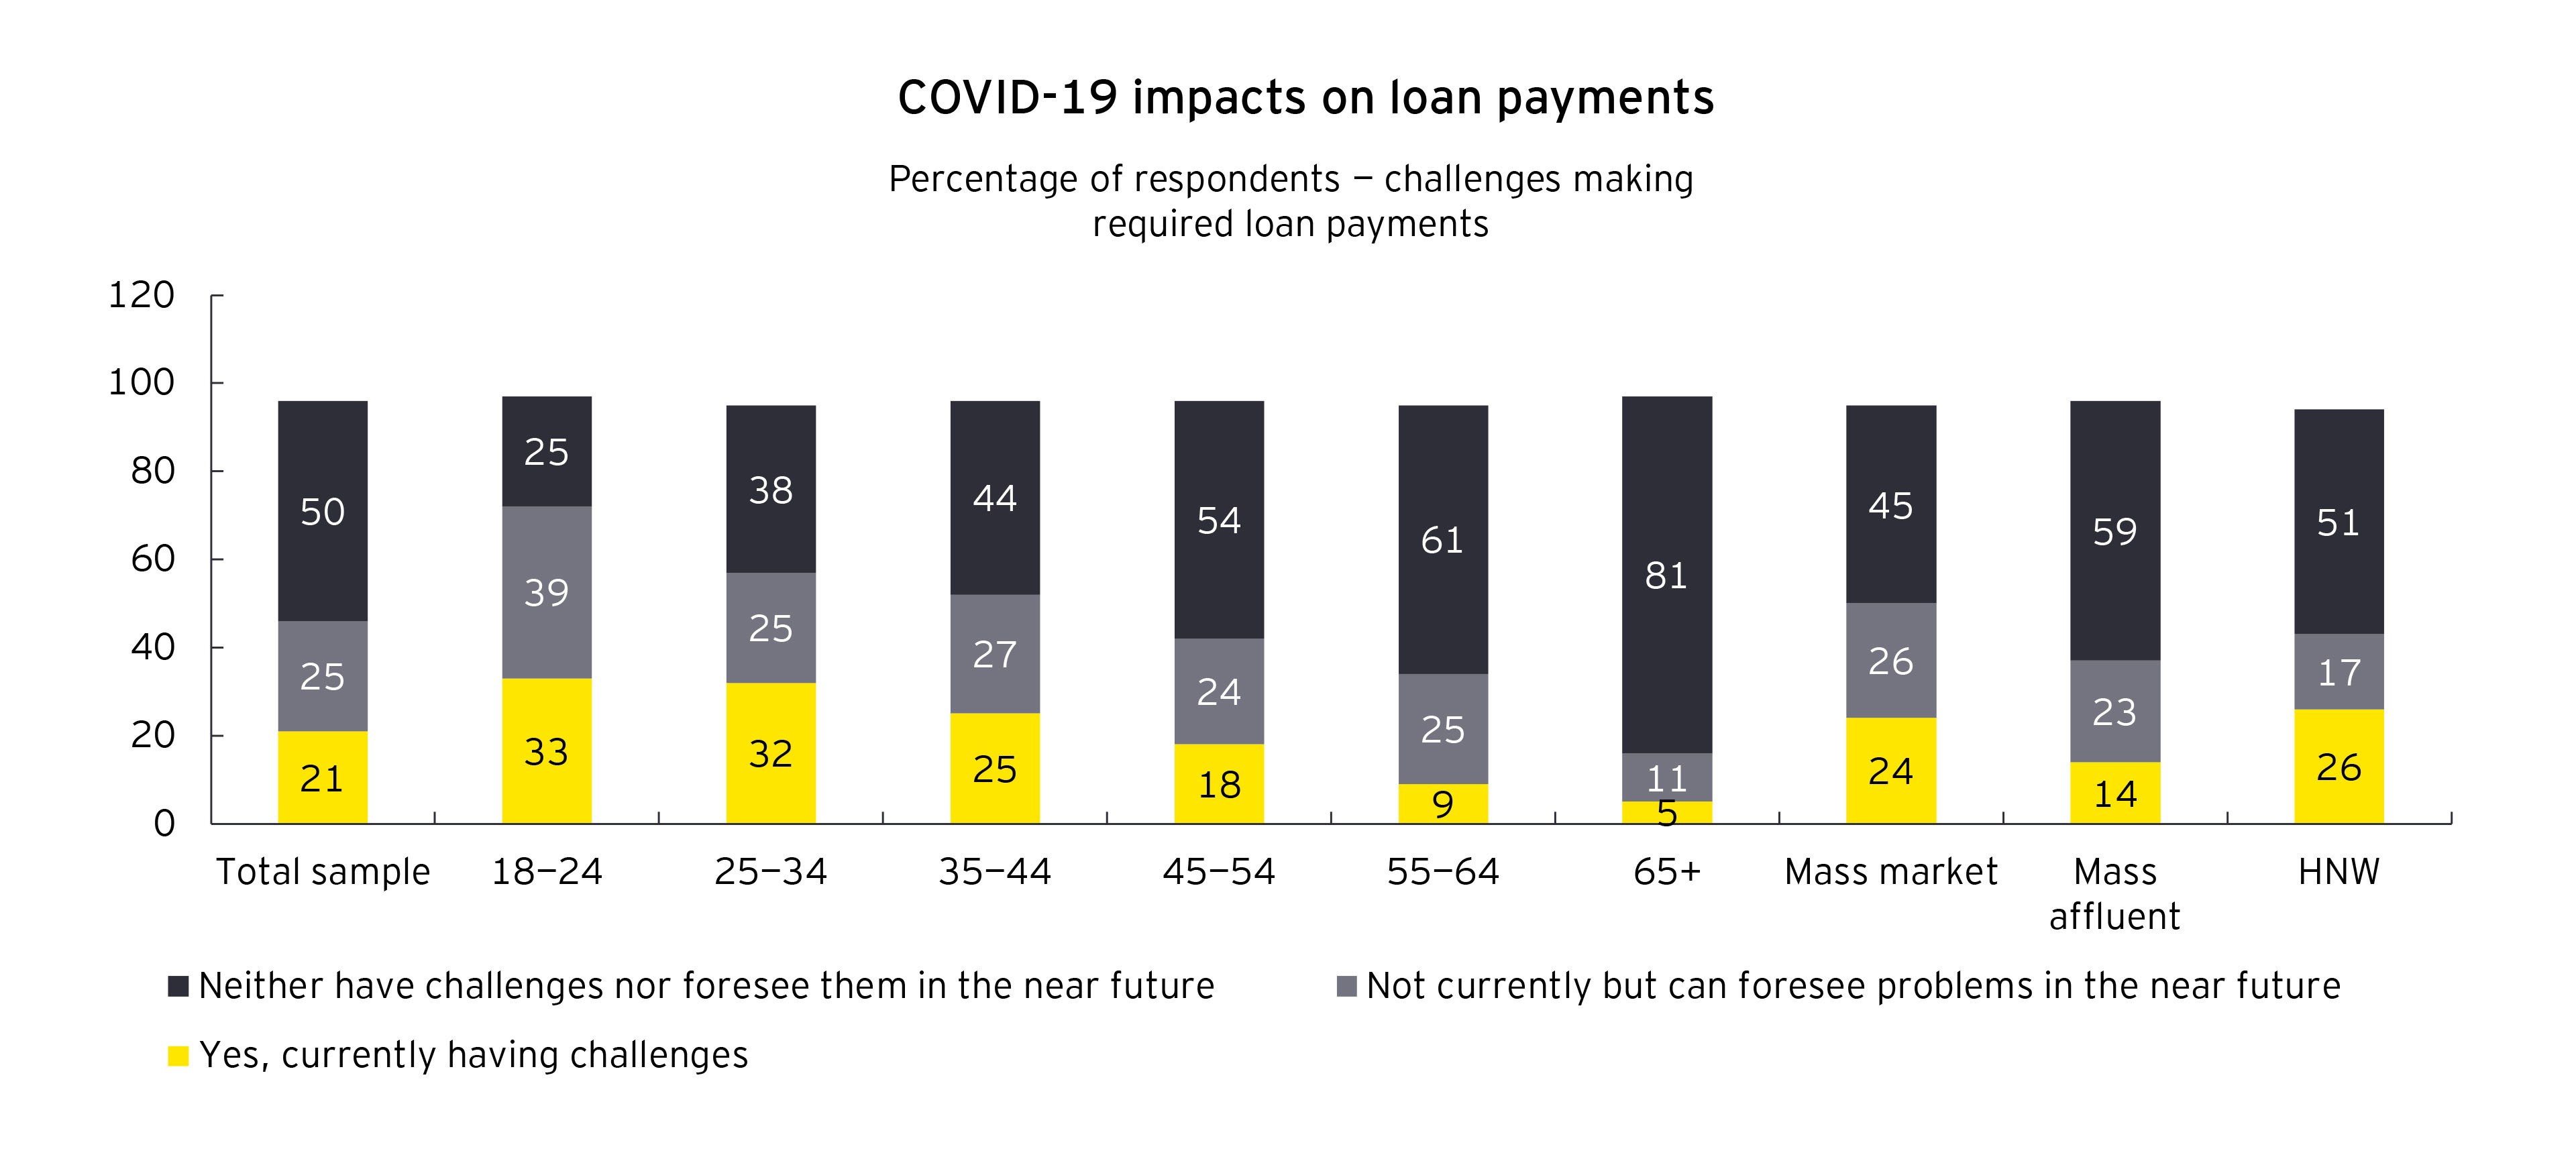 Bar chart of COVID-19 impacts on loan payments